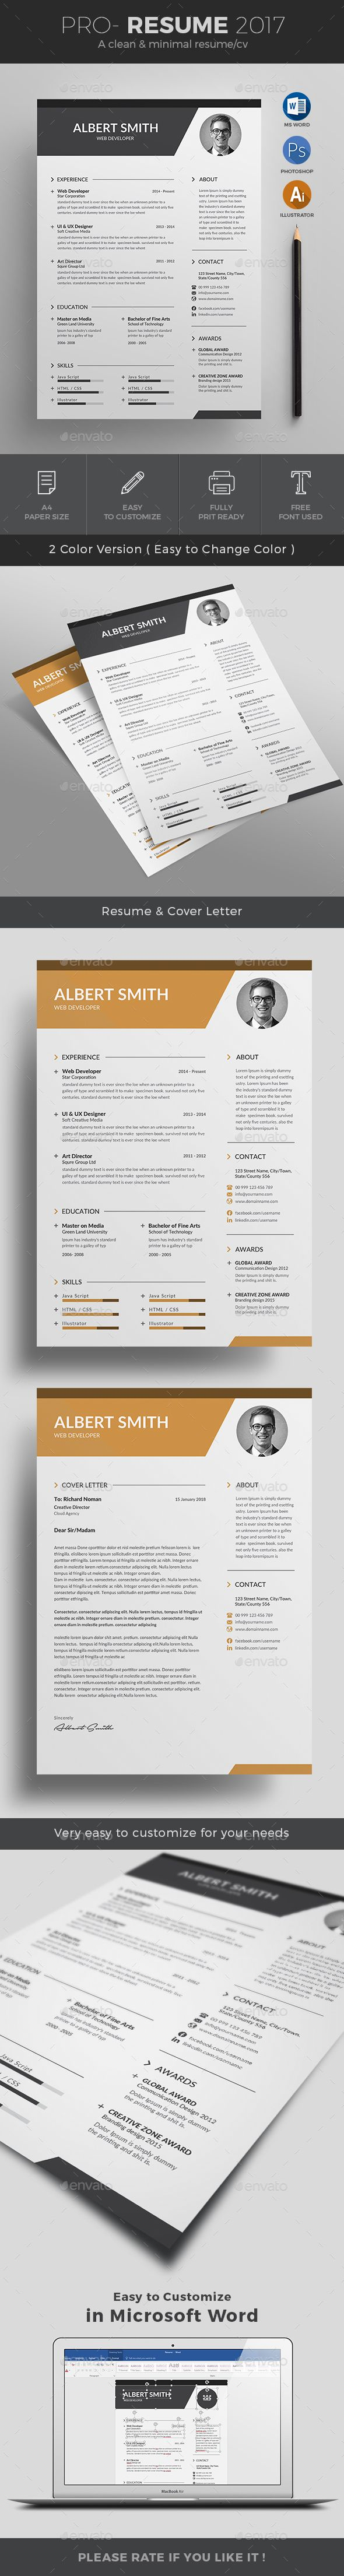 download job resume format%0A Resume  Resume IdeasProfessional Resume TemplateProfessional